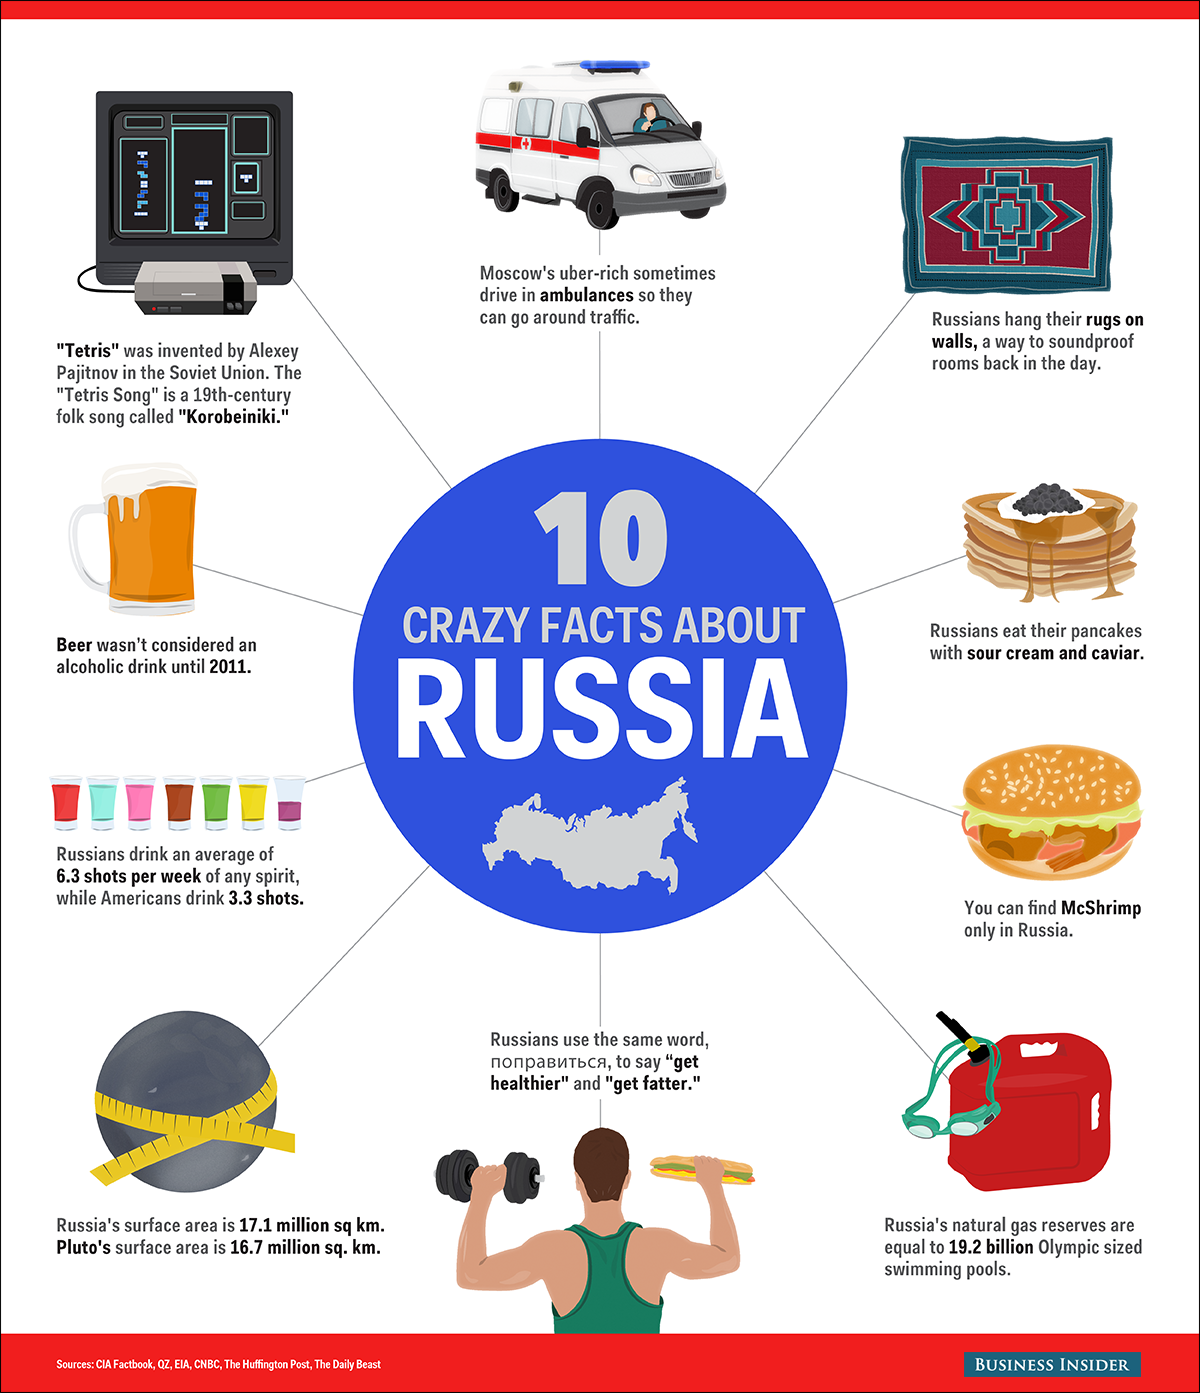 Facts about Russia Infographic